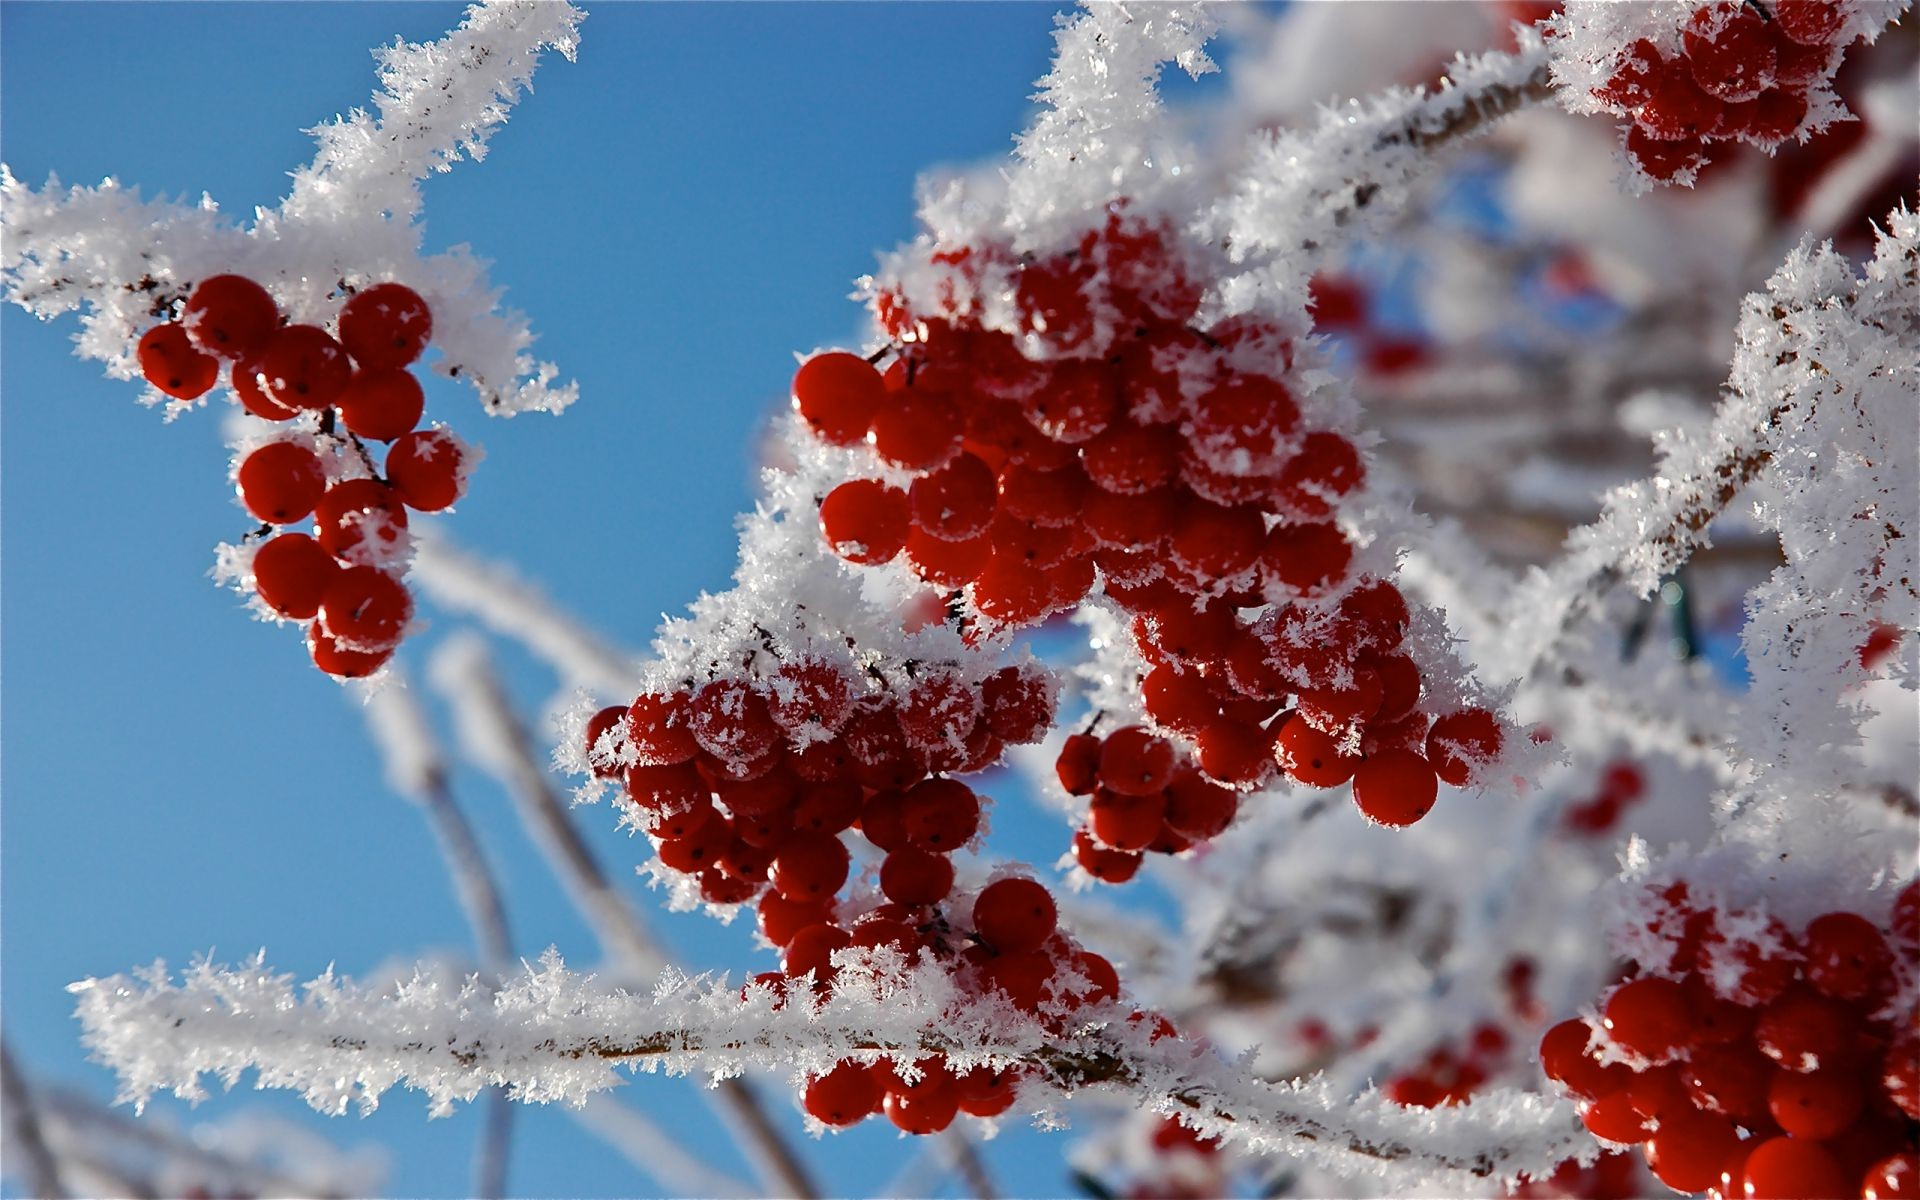 berries winter frost snow nature branch bright season tree berry christmas ice rowanberry outdoors leaf rowan shining frozen color cold